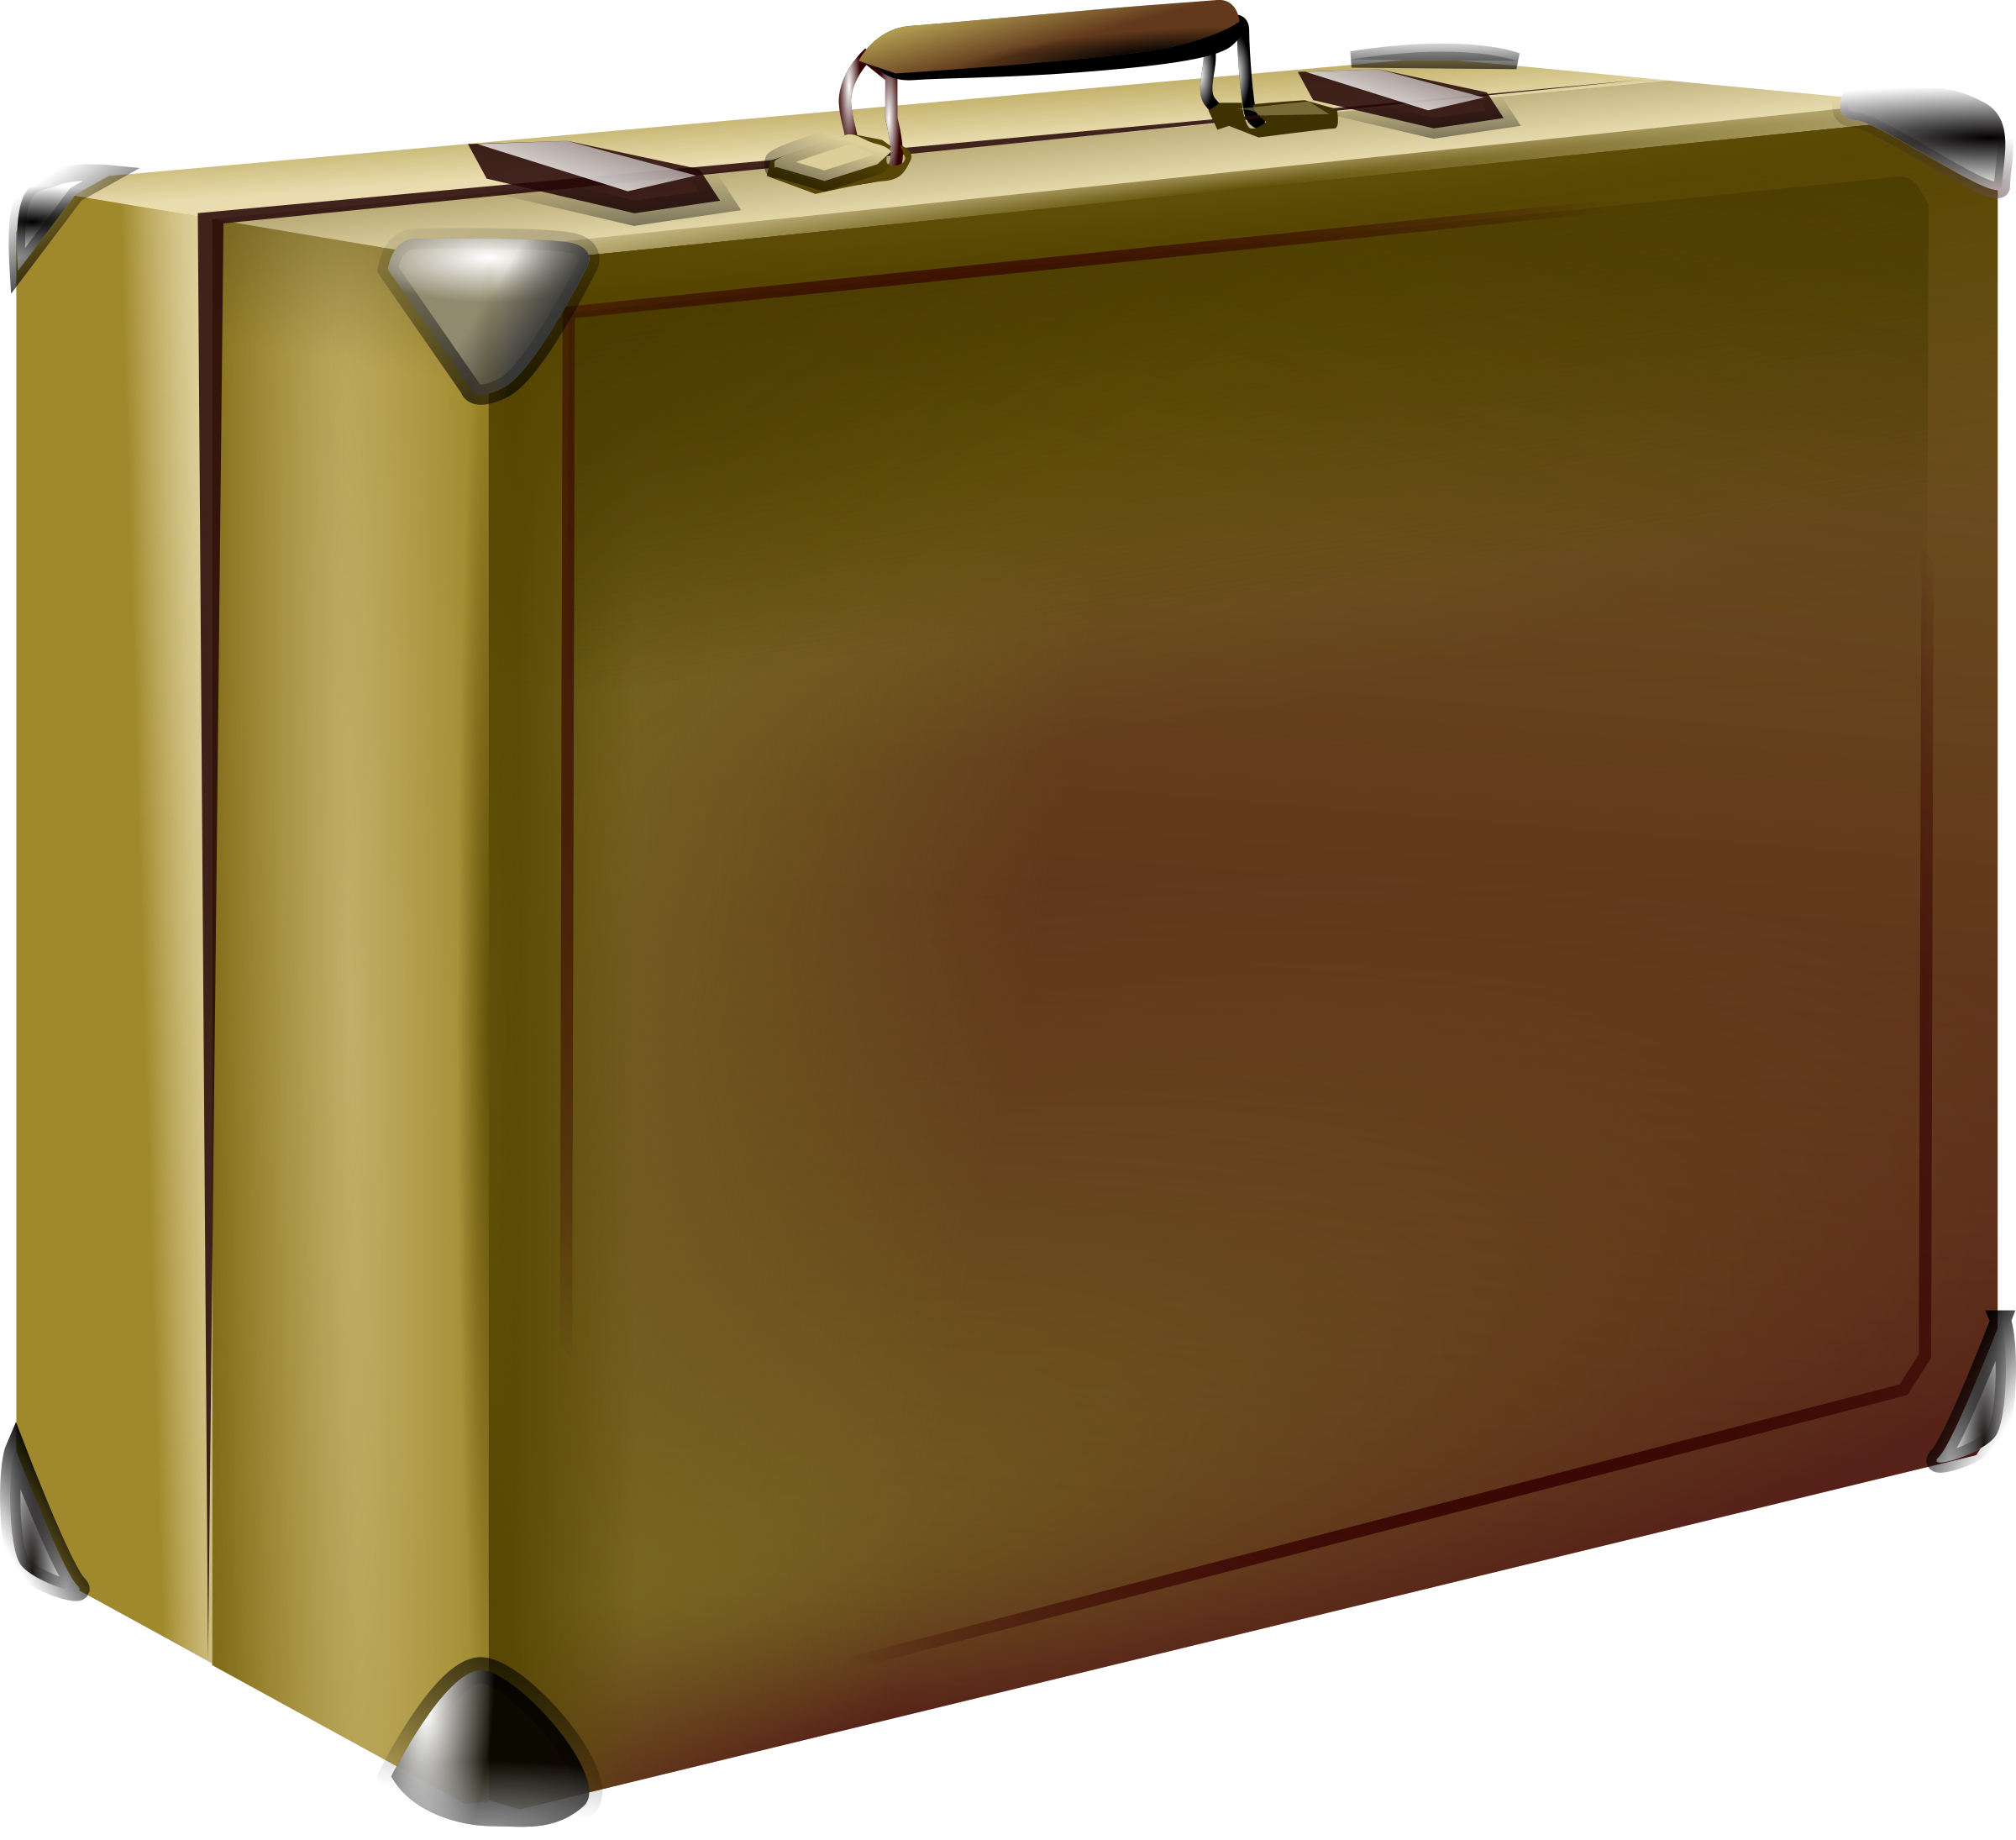 Cartoon briefcase png. Suitcase icons free and